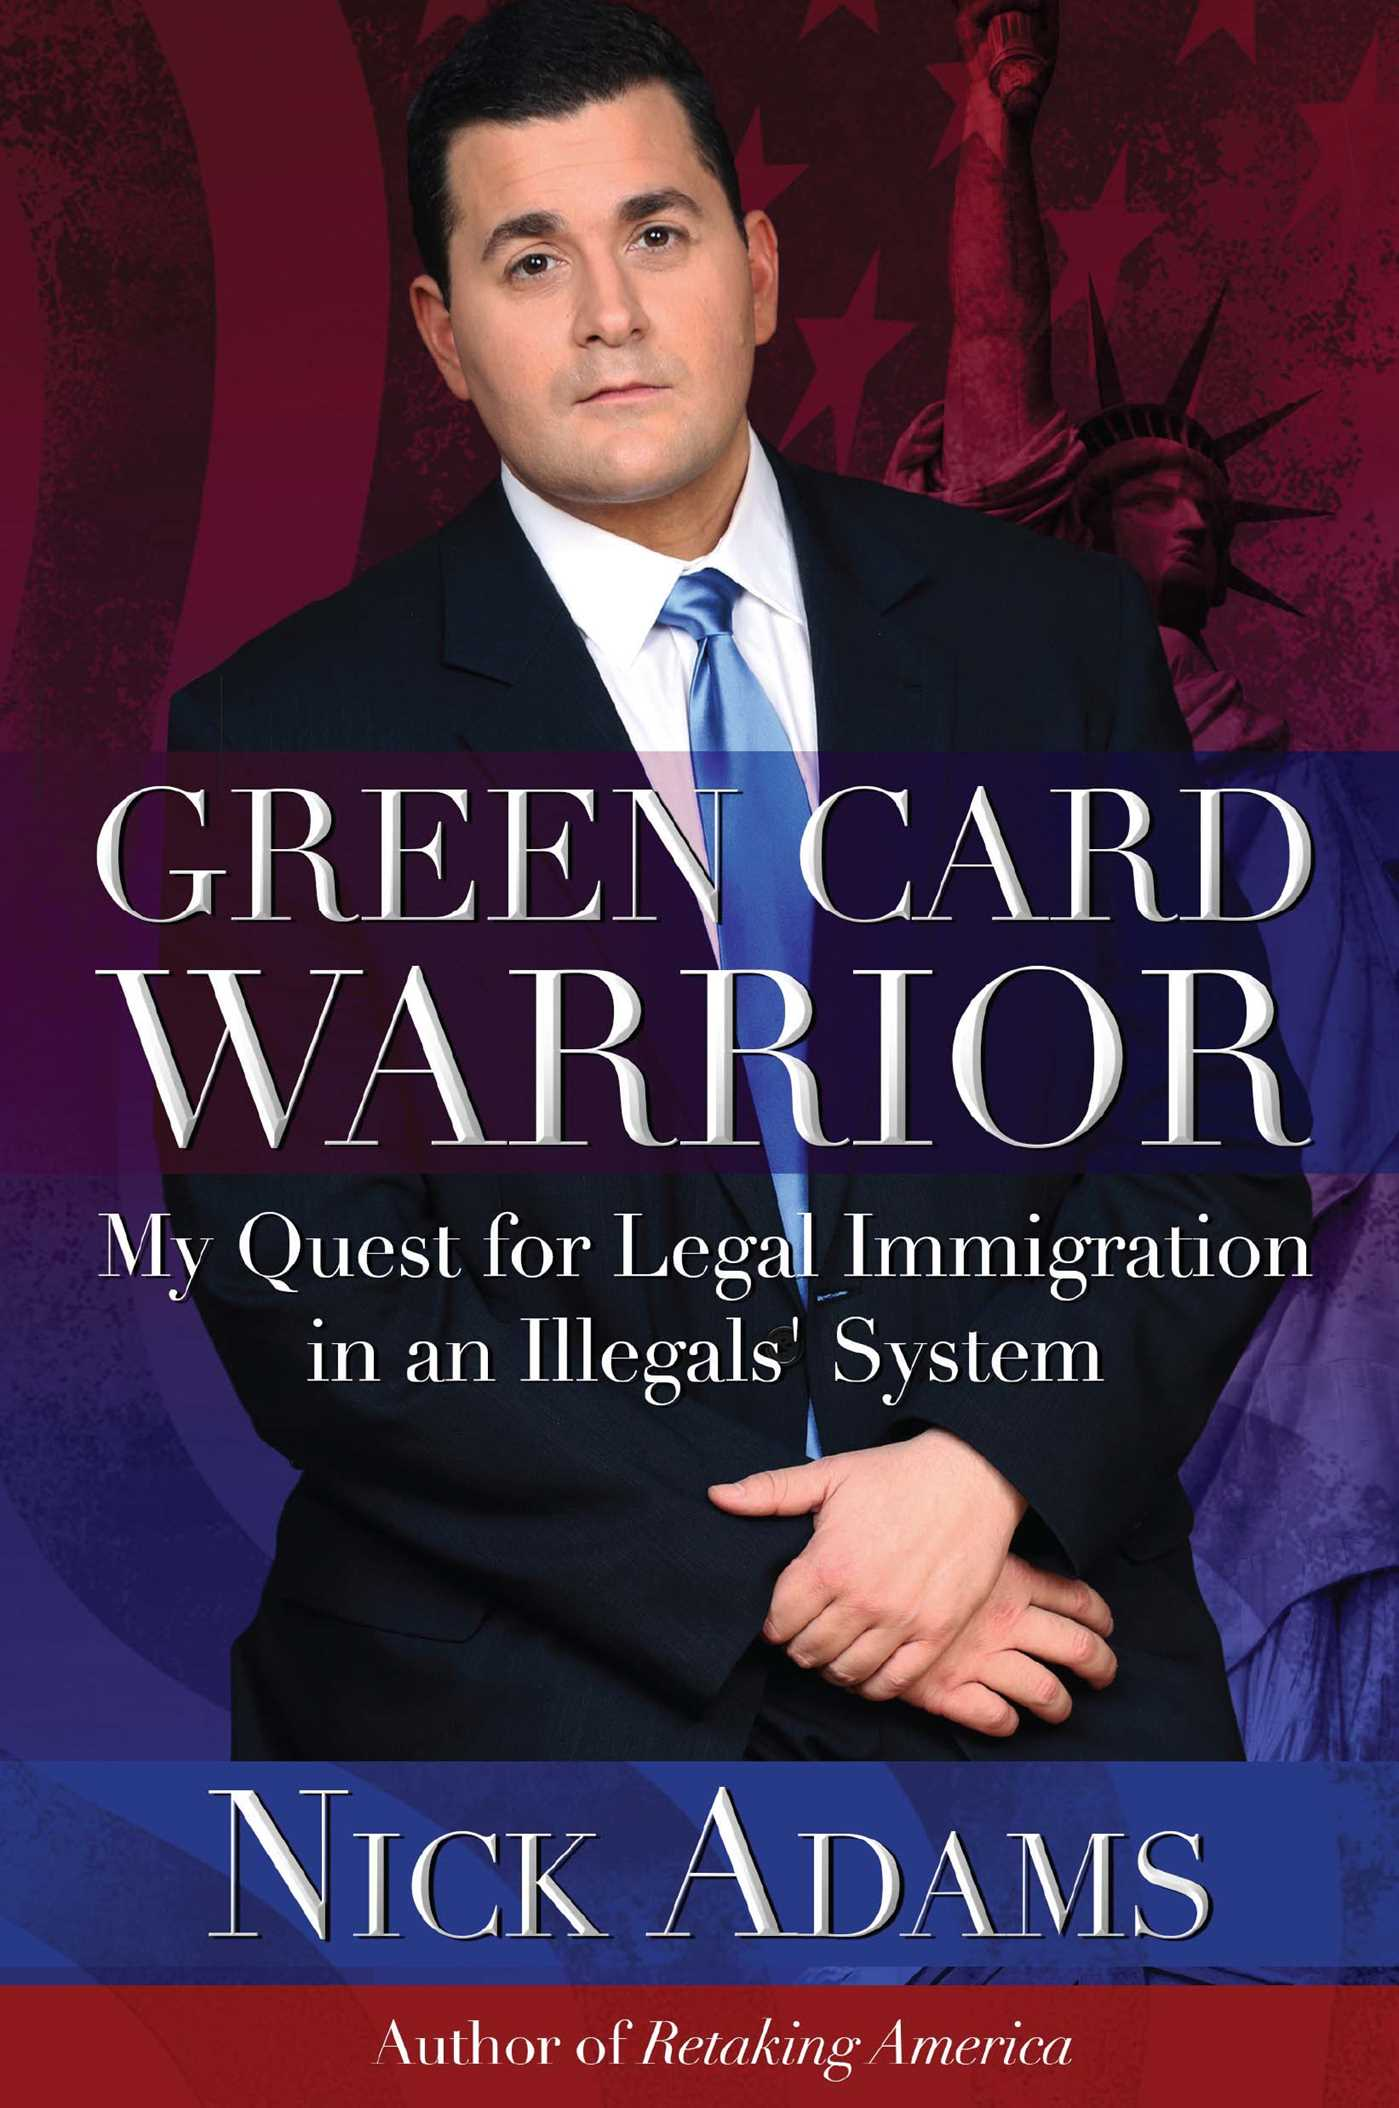 Green card warrior 9781682613054 hr